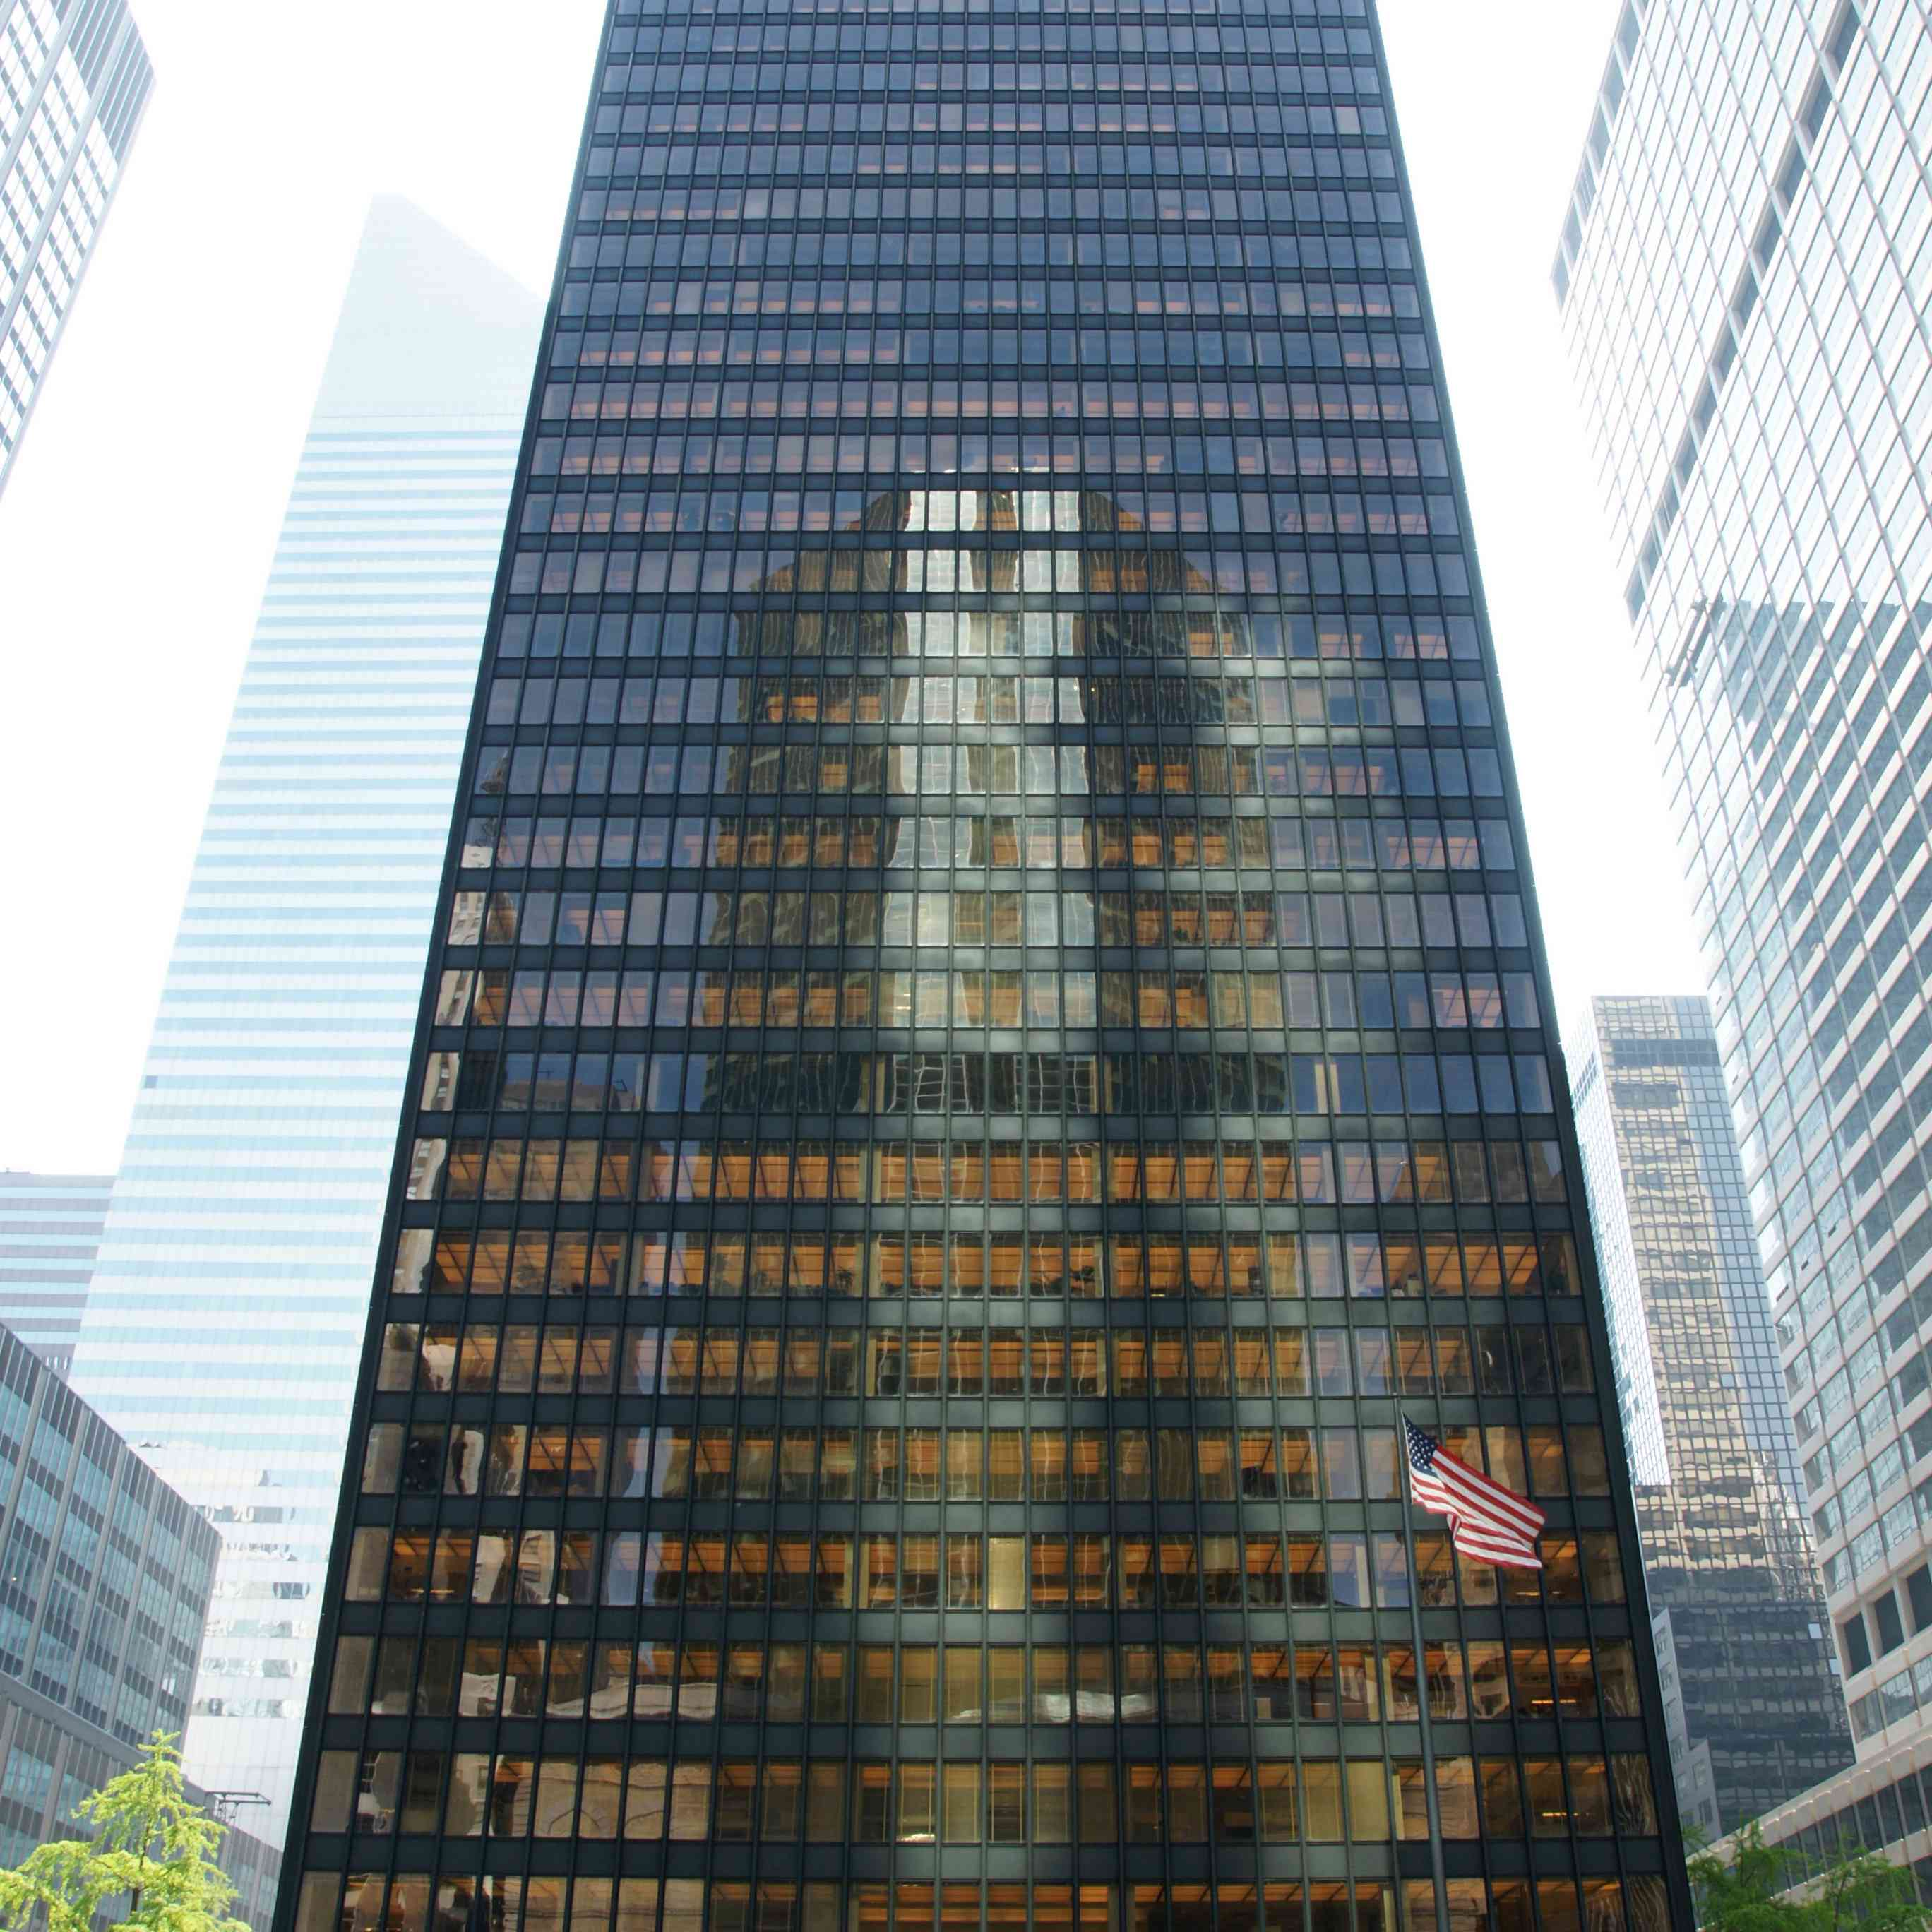 Seagram Building in NYC